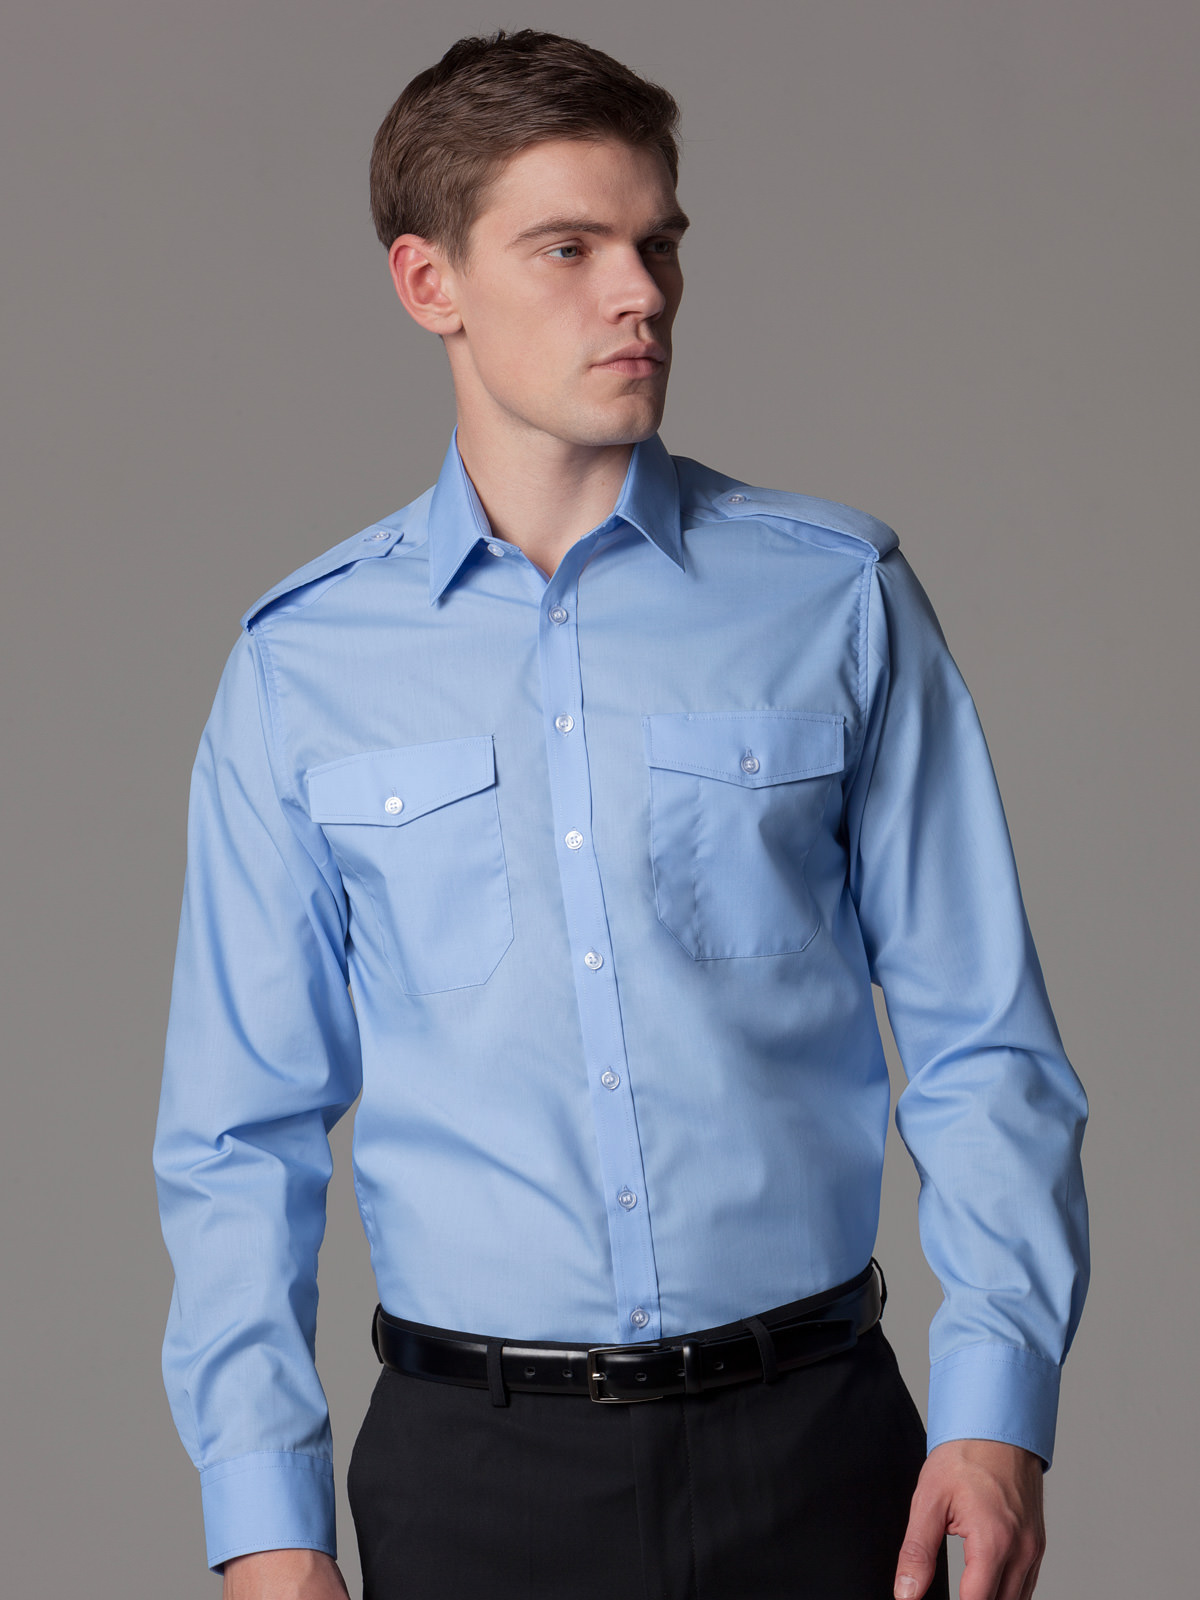 Men S Casual Inspiration 4: KK134 Men's Pilot Shirt Long Sleeve